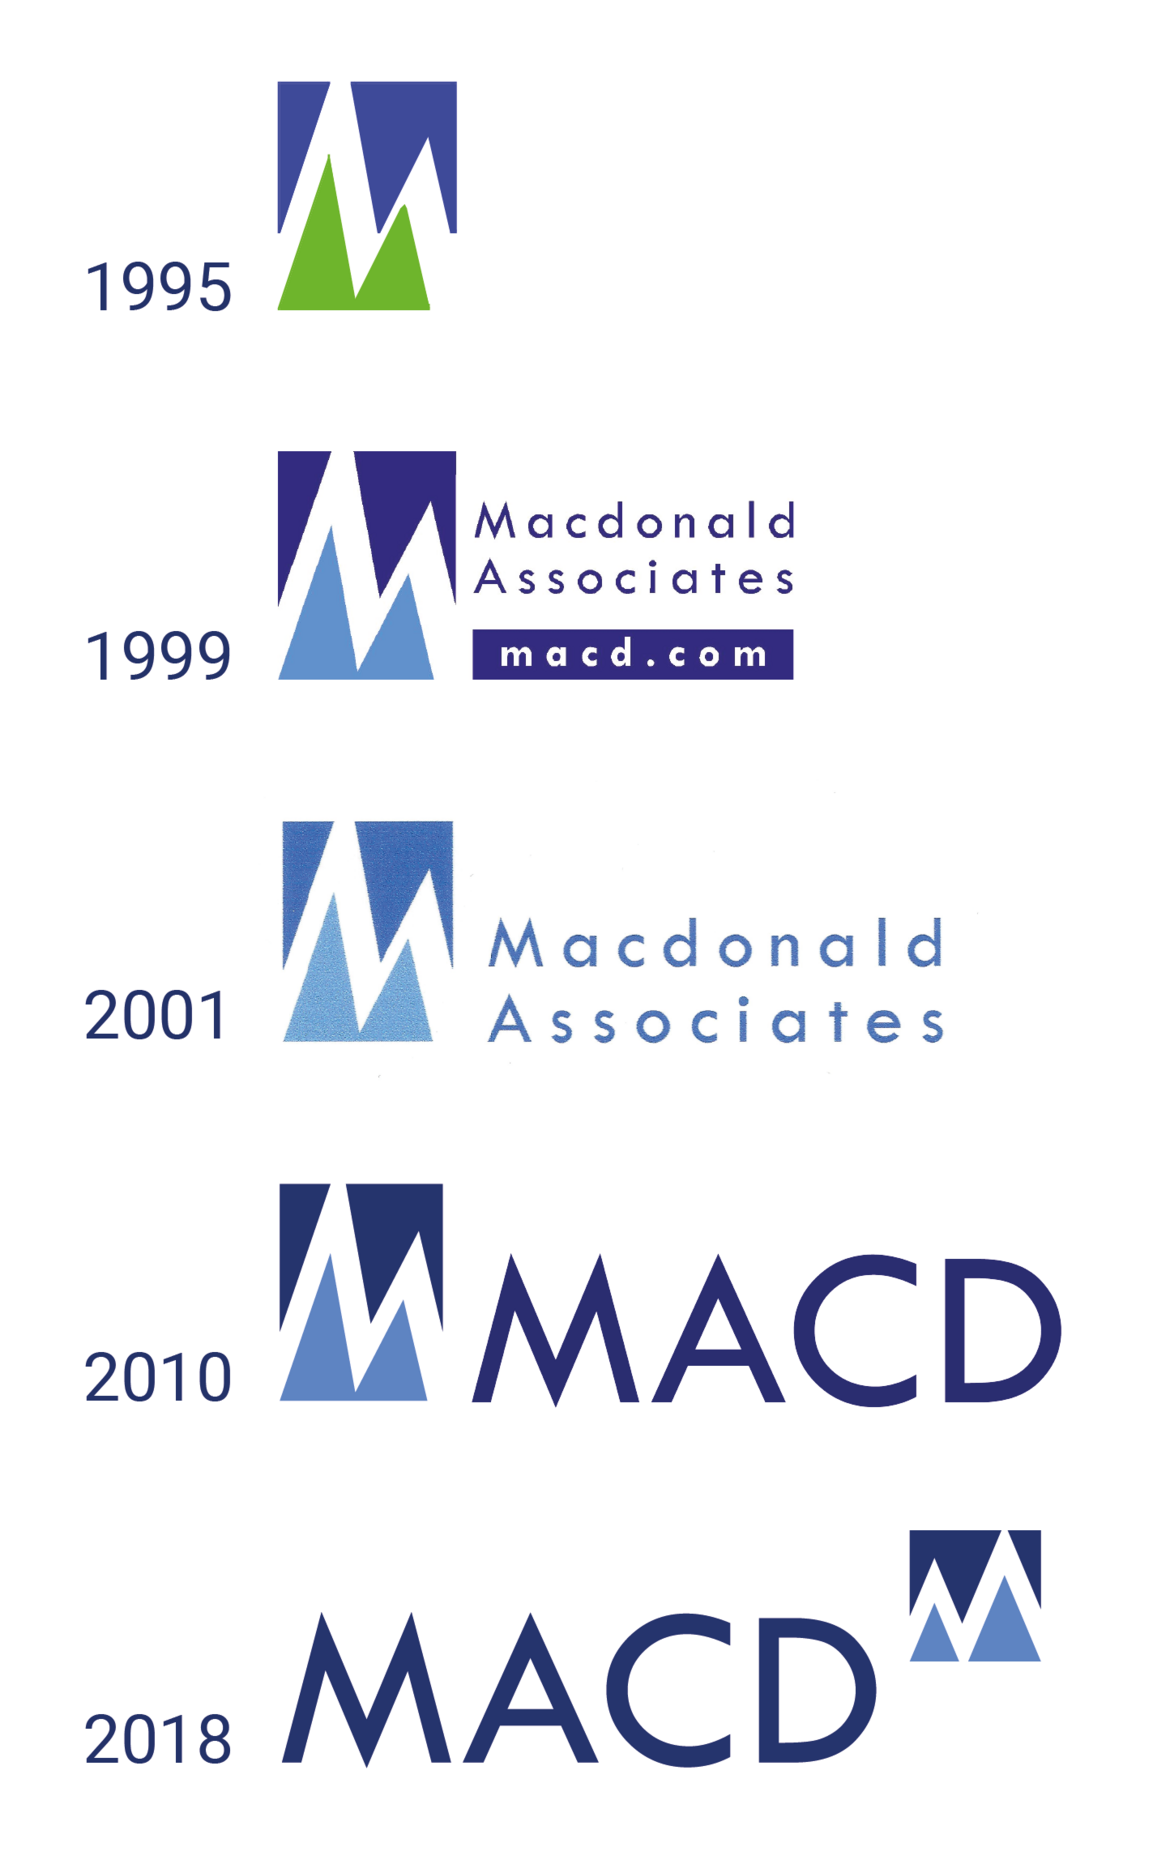 MACD Logo Development 1995-2018